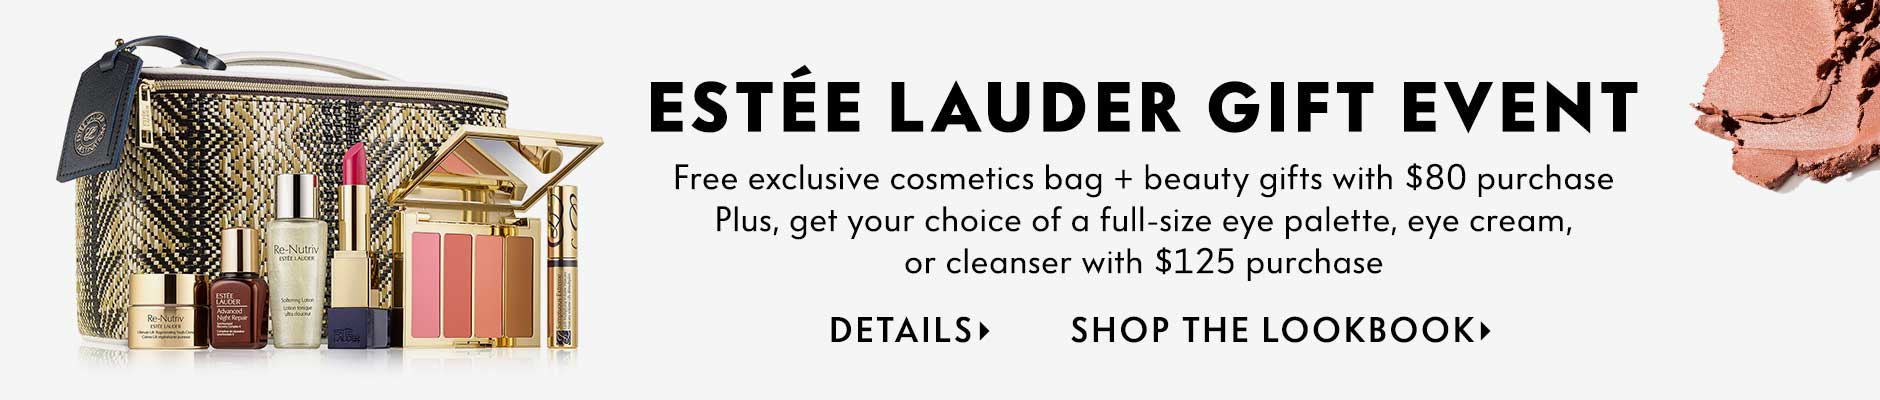 Estee Lauder Gift Event: Free exclusive cosmetics bag + beauty gifts with $80 purchase - Plus, get your choice of a full-size eye palette, eye cream, or cleanser with $125 purchase